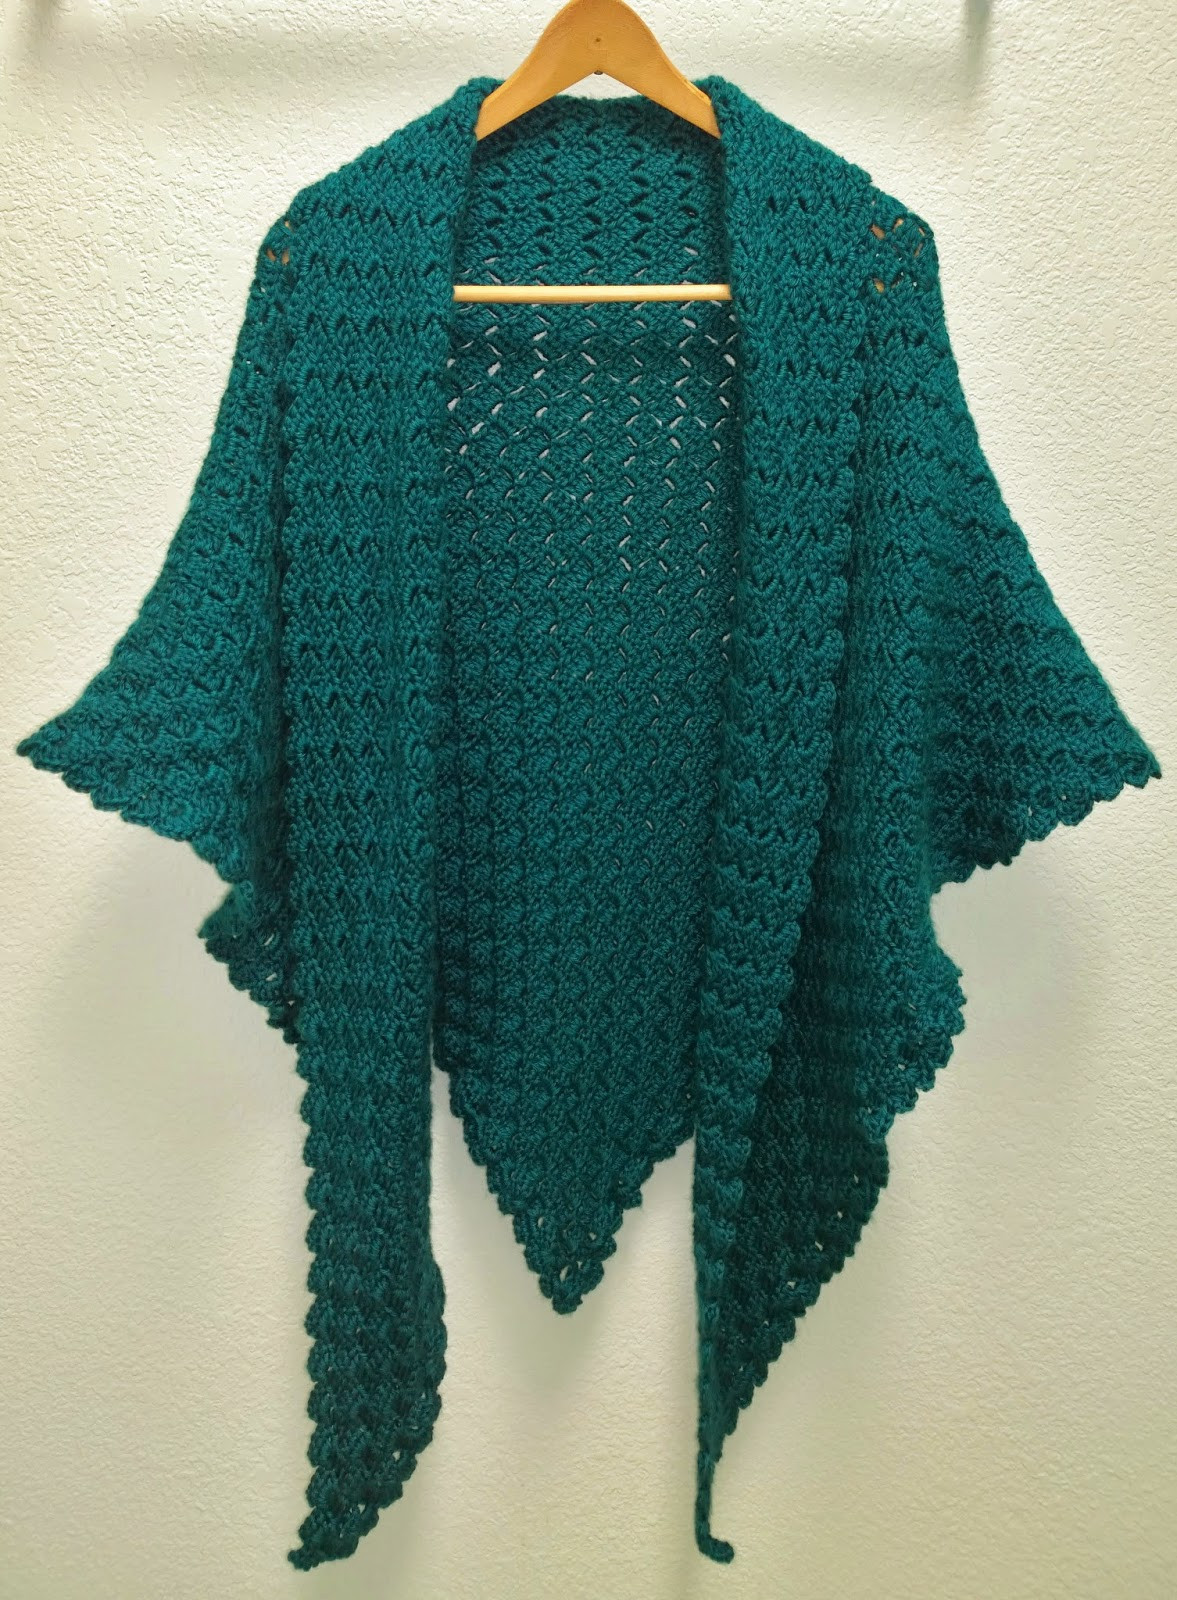 Awesome N Sense Corner to Corner Triangle Shawl Crochet A Shawl Of Beautiful Cornflower Blue Free Crochet Pattern Crochet A Shawl